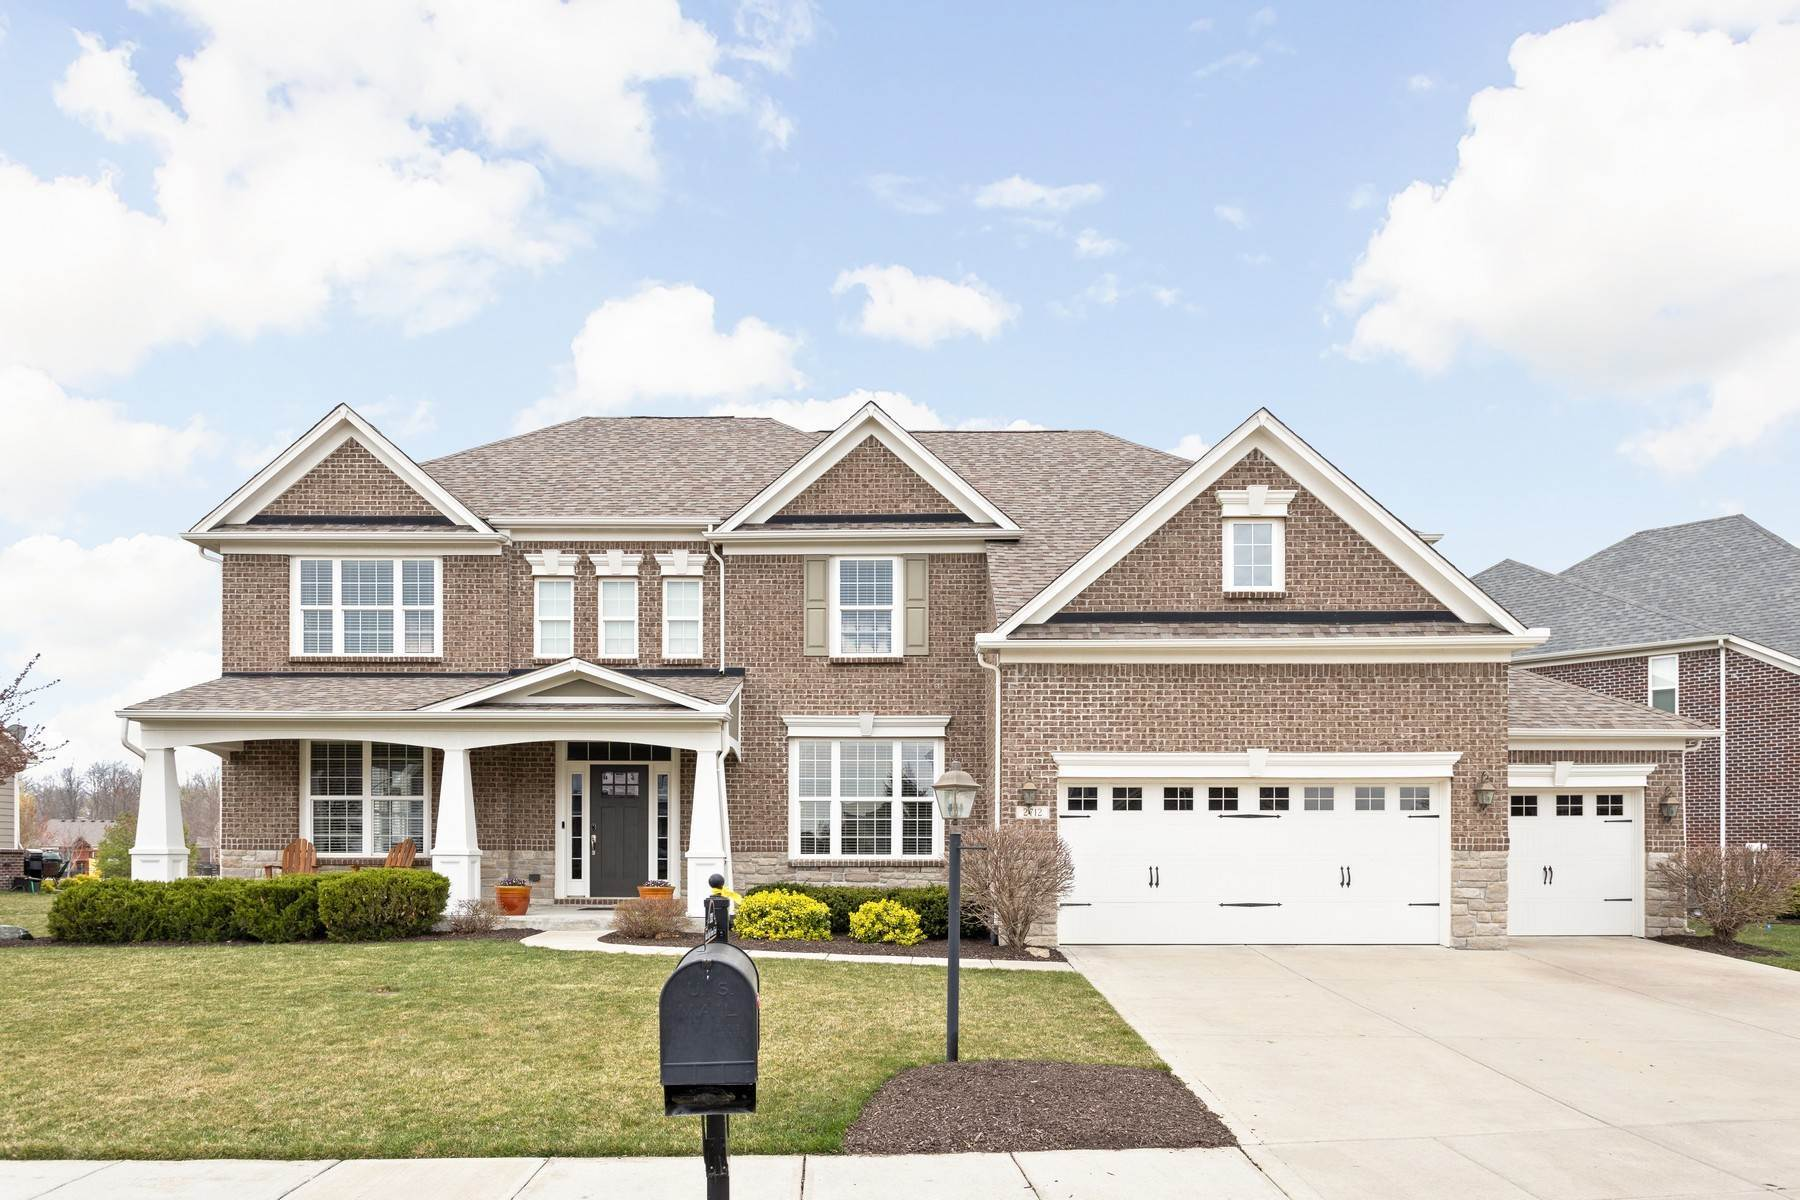 Single Family Homes for Sale at Wonderful Residence in Brookhaven 2712 East High Grove Circle Zionsville, Indiana 46077 United States